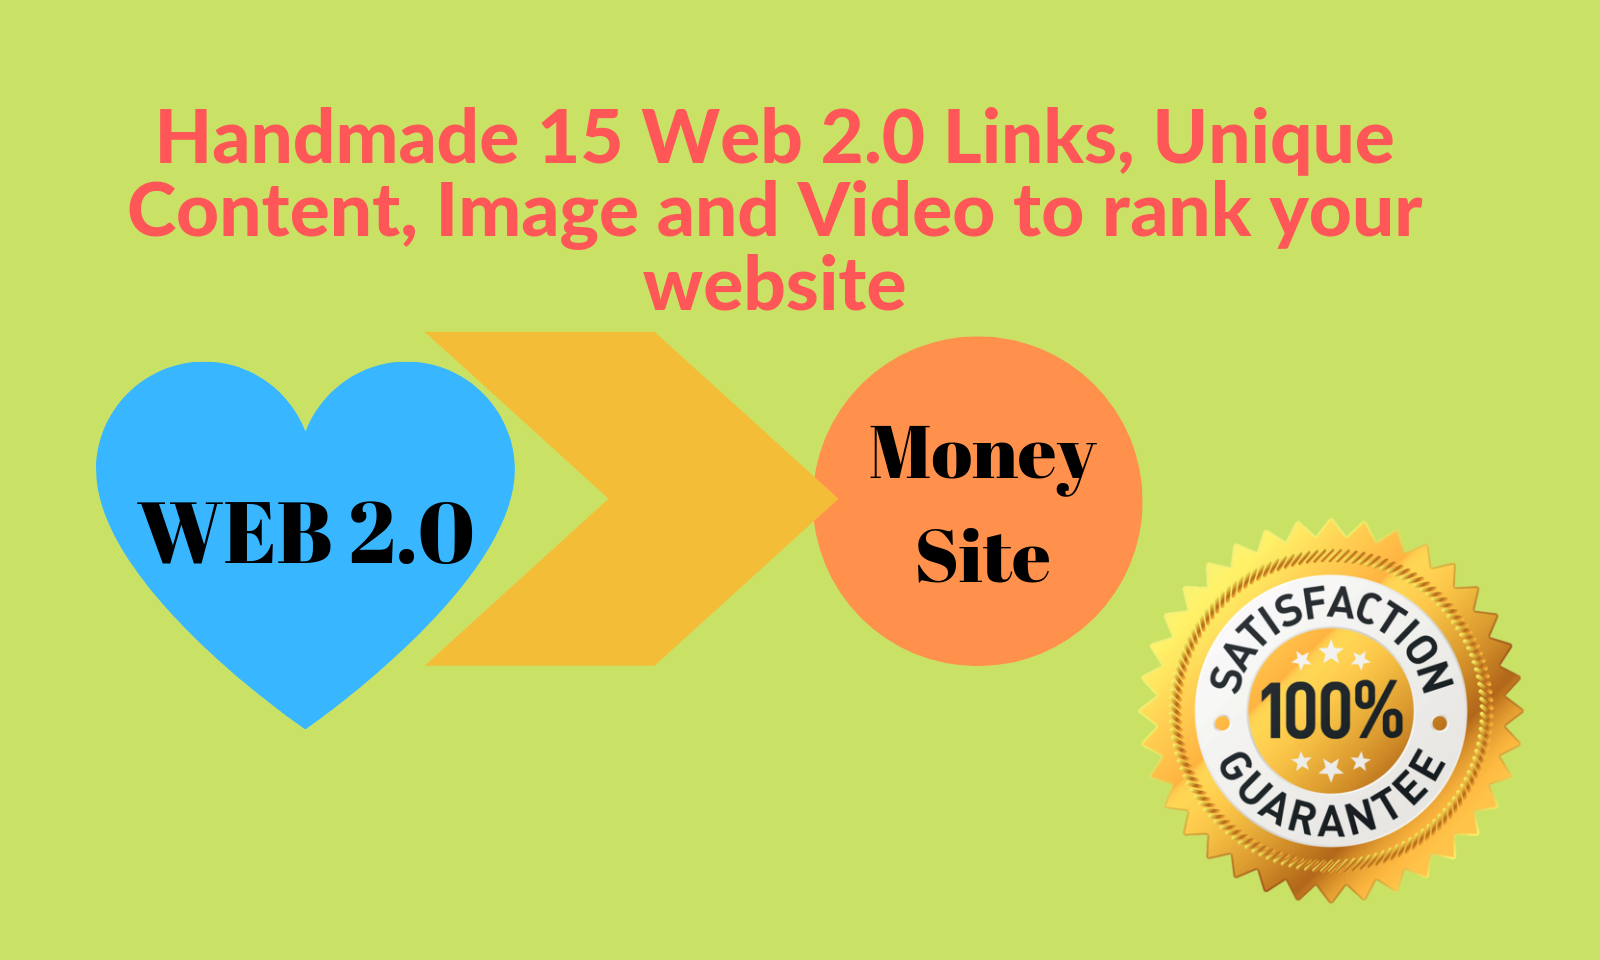 Handmade 15 Web 2.0 Links,  Unique Content,  Image and Video to rank your website